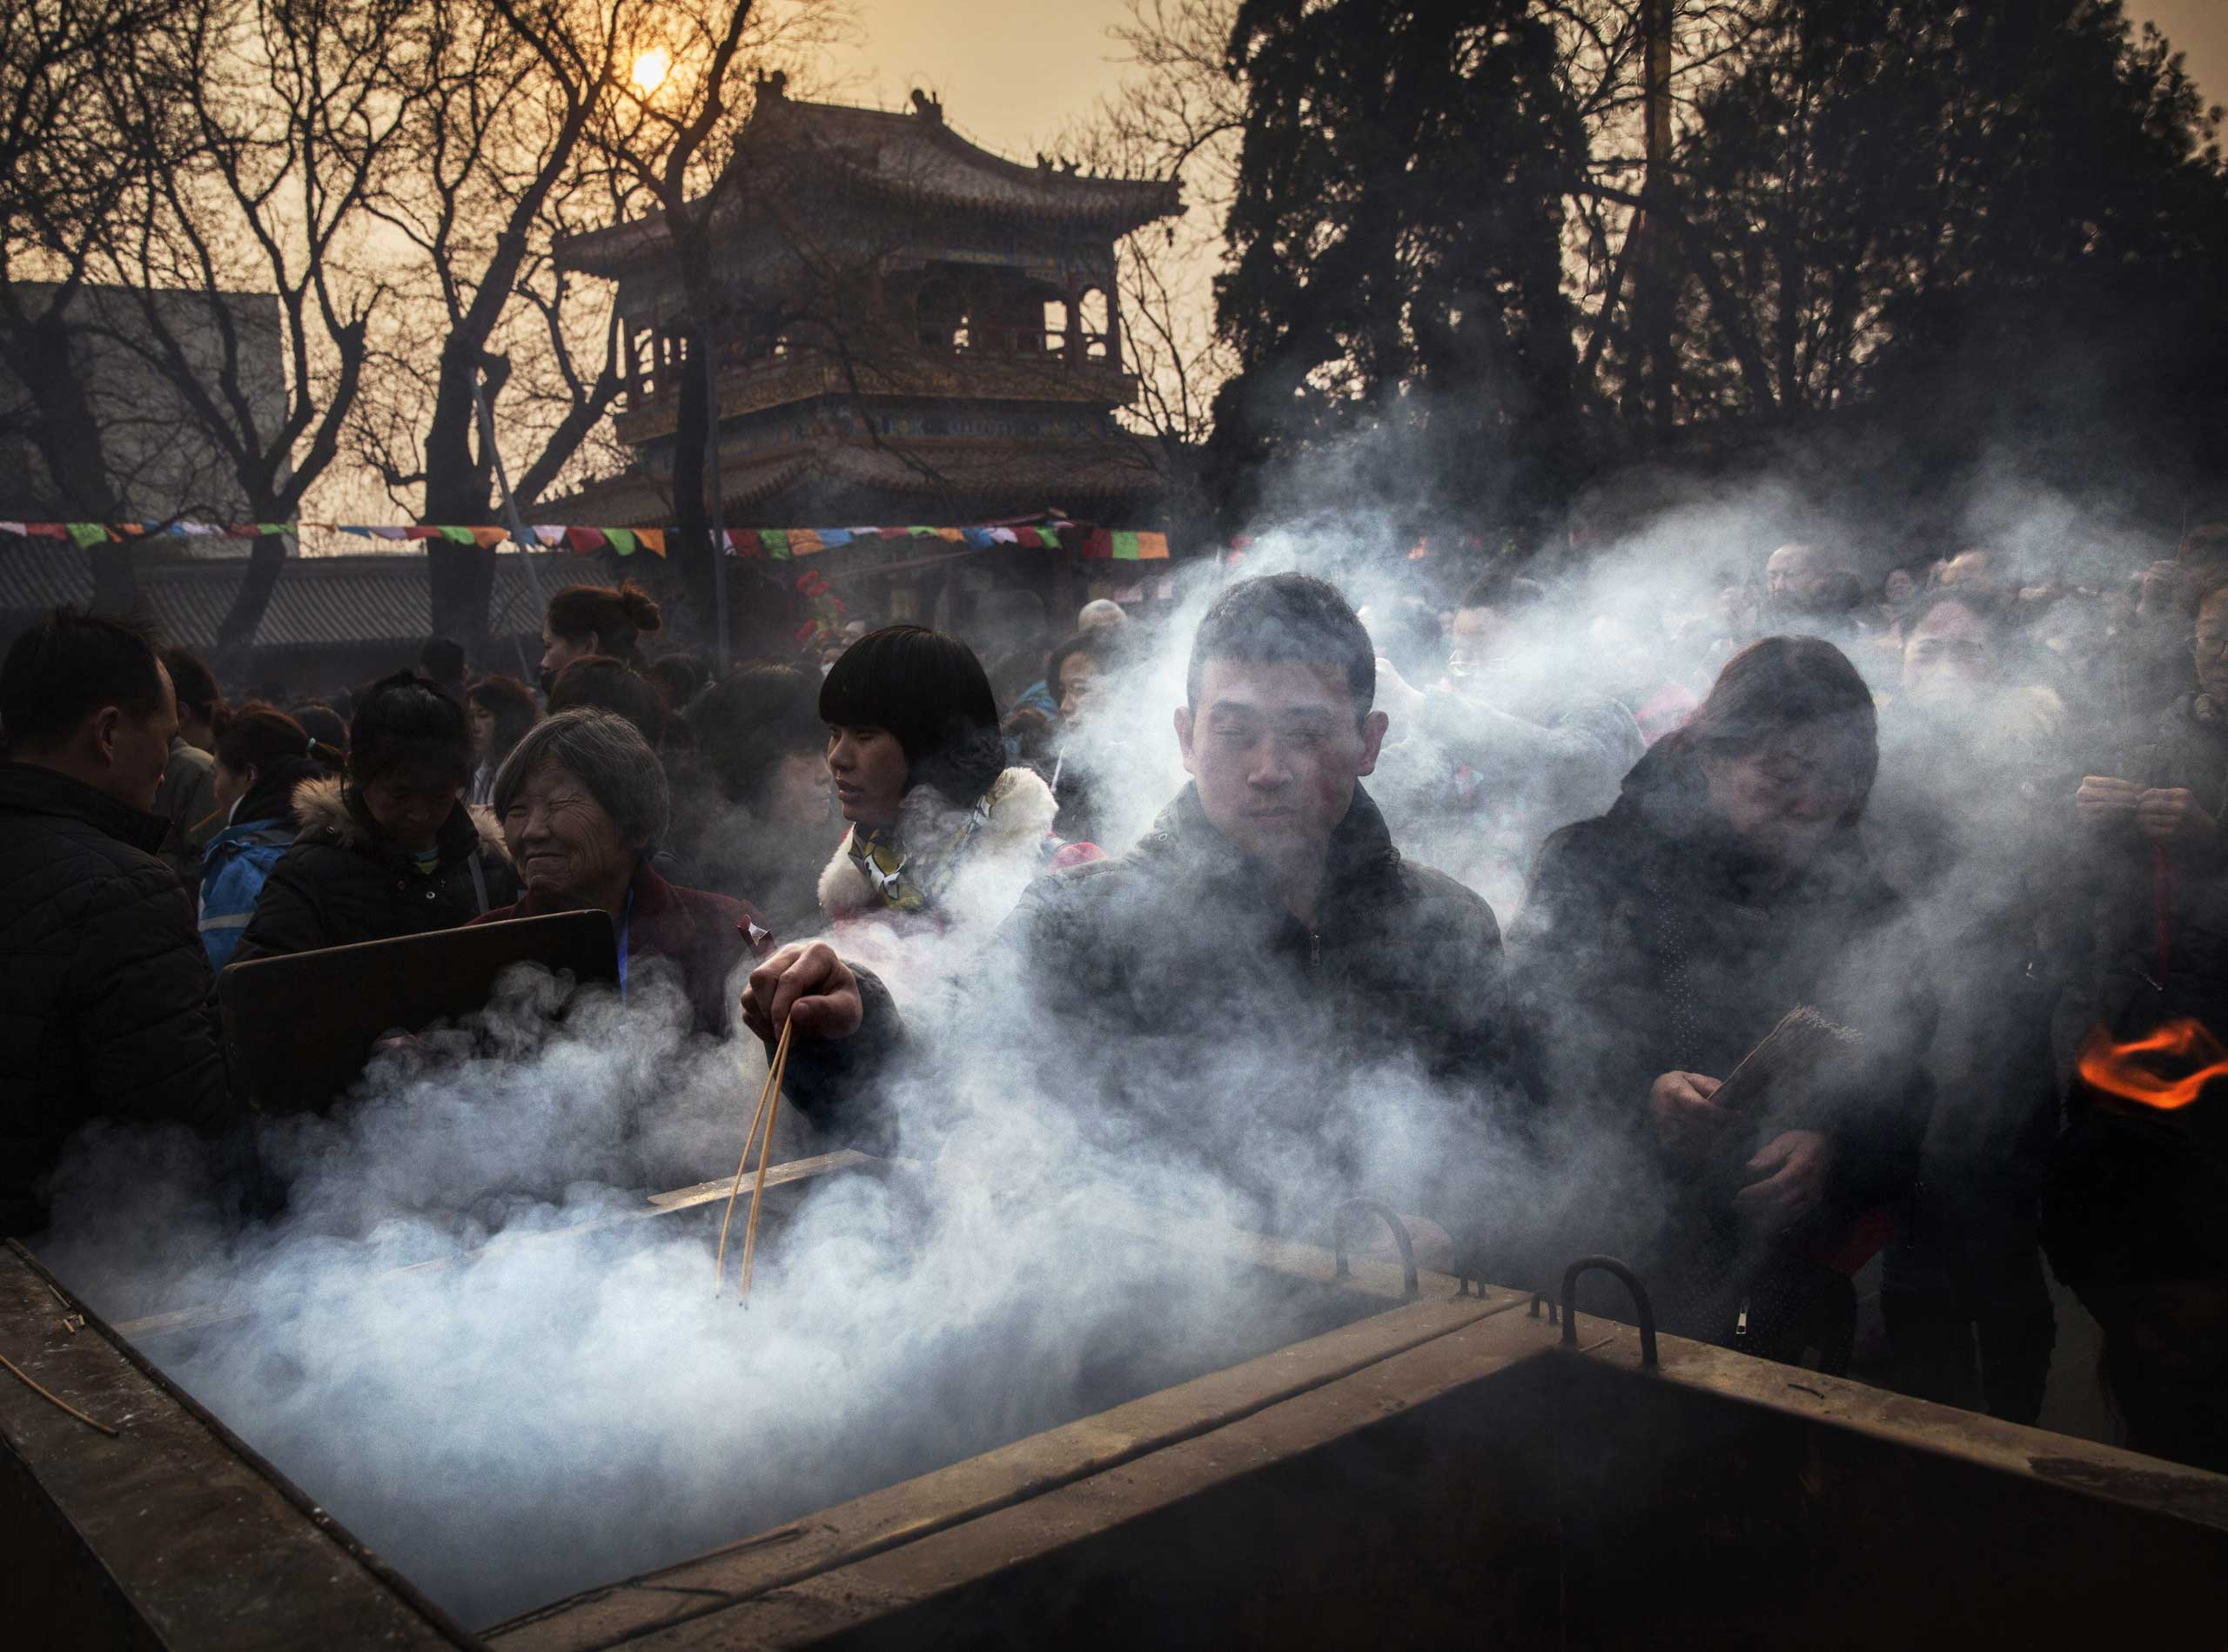 A man is shrouded in smoke from incense as he lights a stick while praying with others at the Yonghegong Lama Temple during celebrations for the Lunar New Year, Feb. 19, 2015 in Beijing.